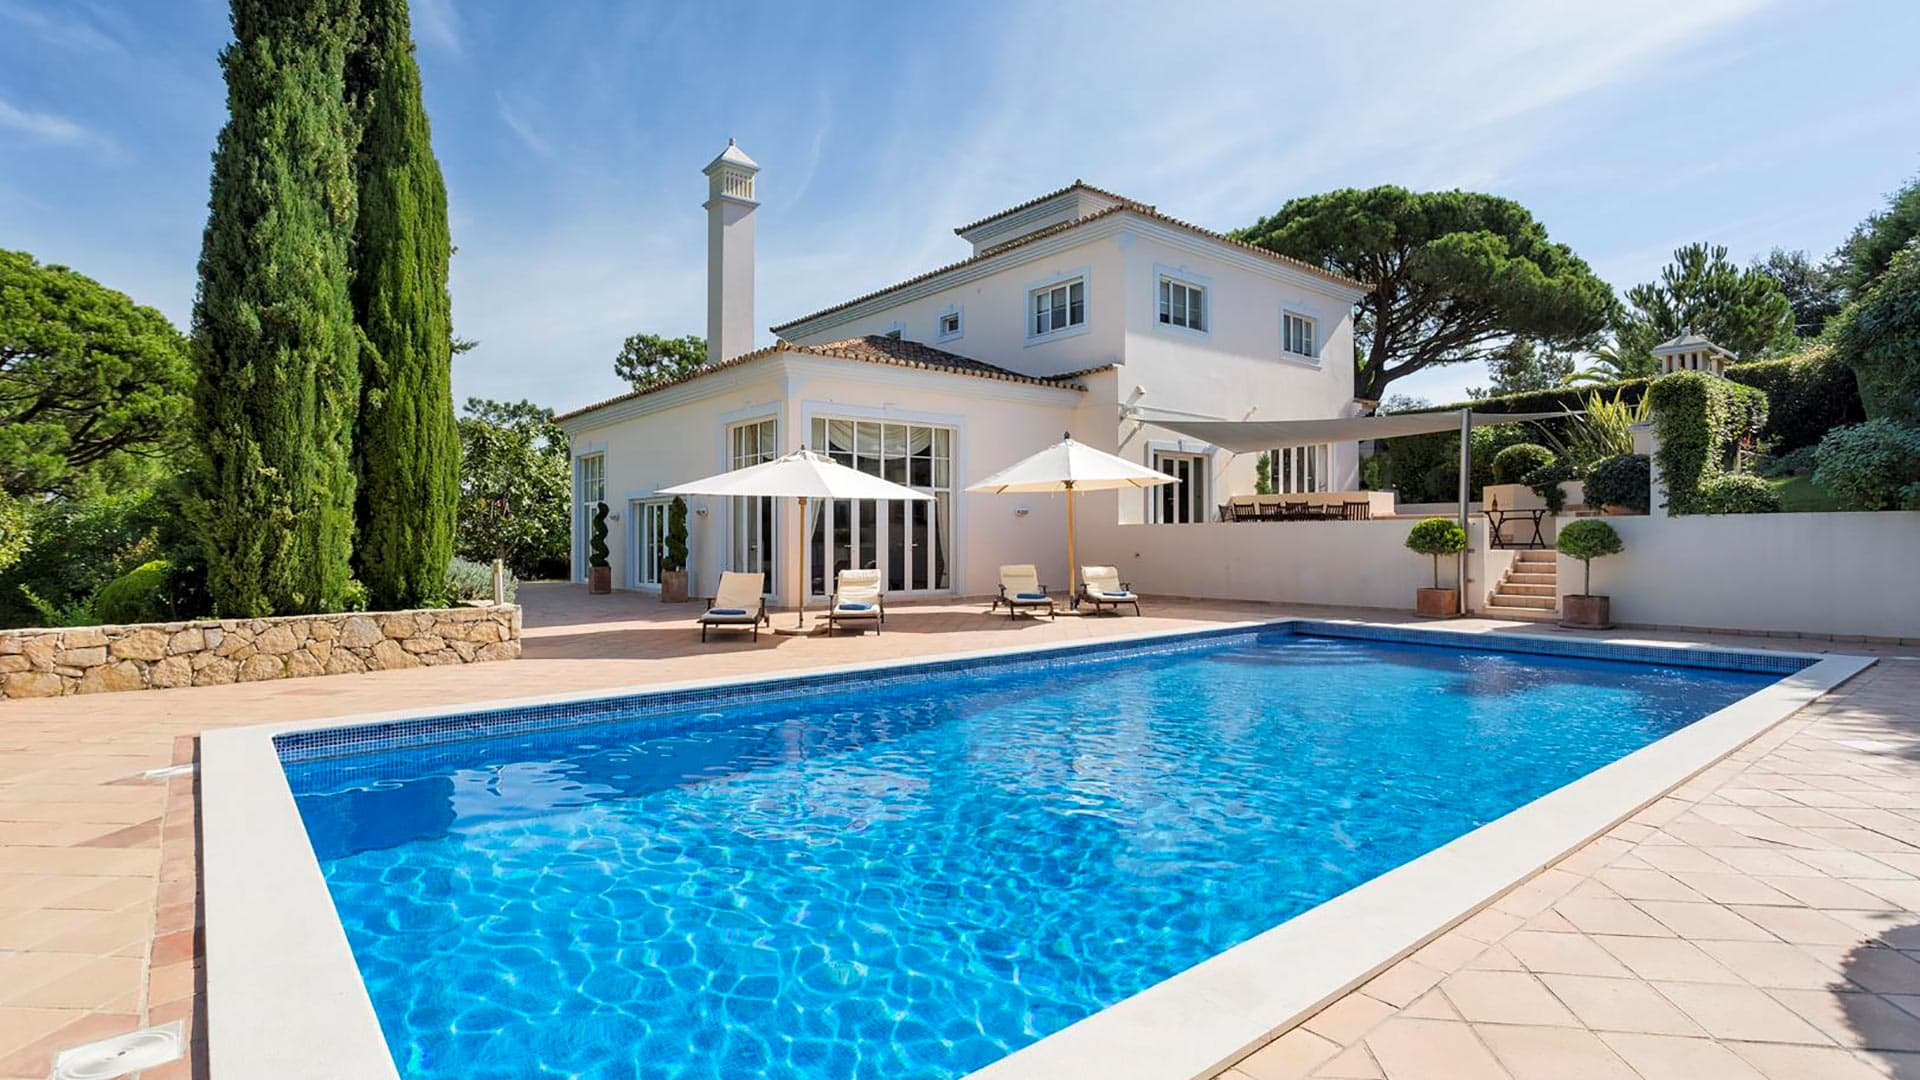 Villa Villa Vanilla, Rental in Algarve